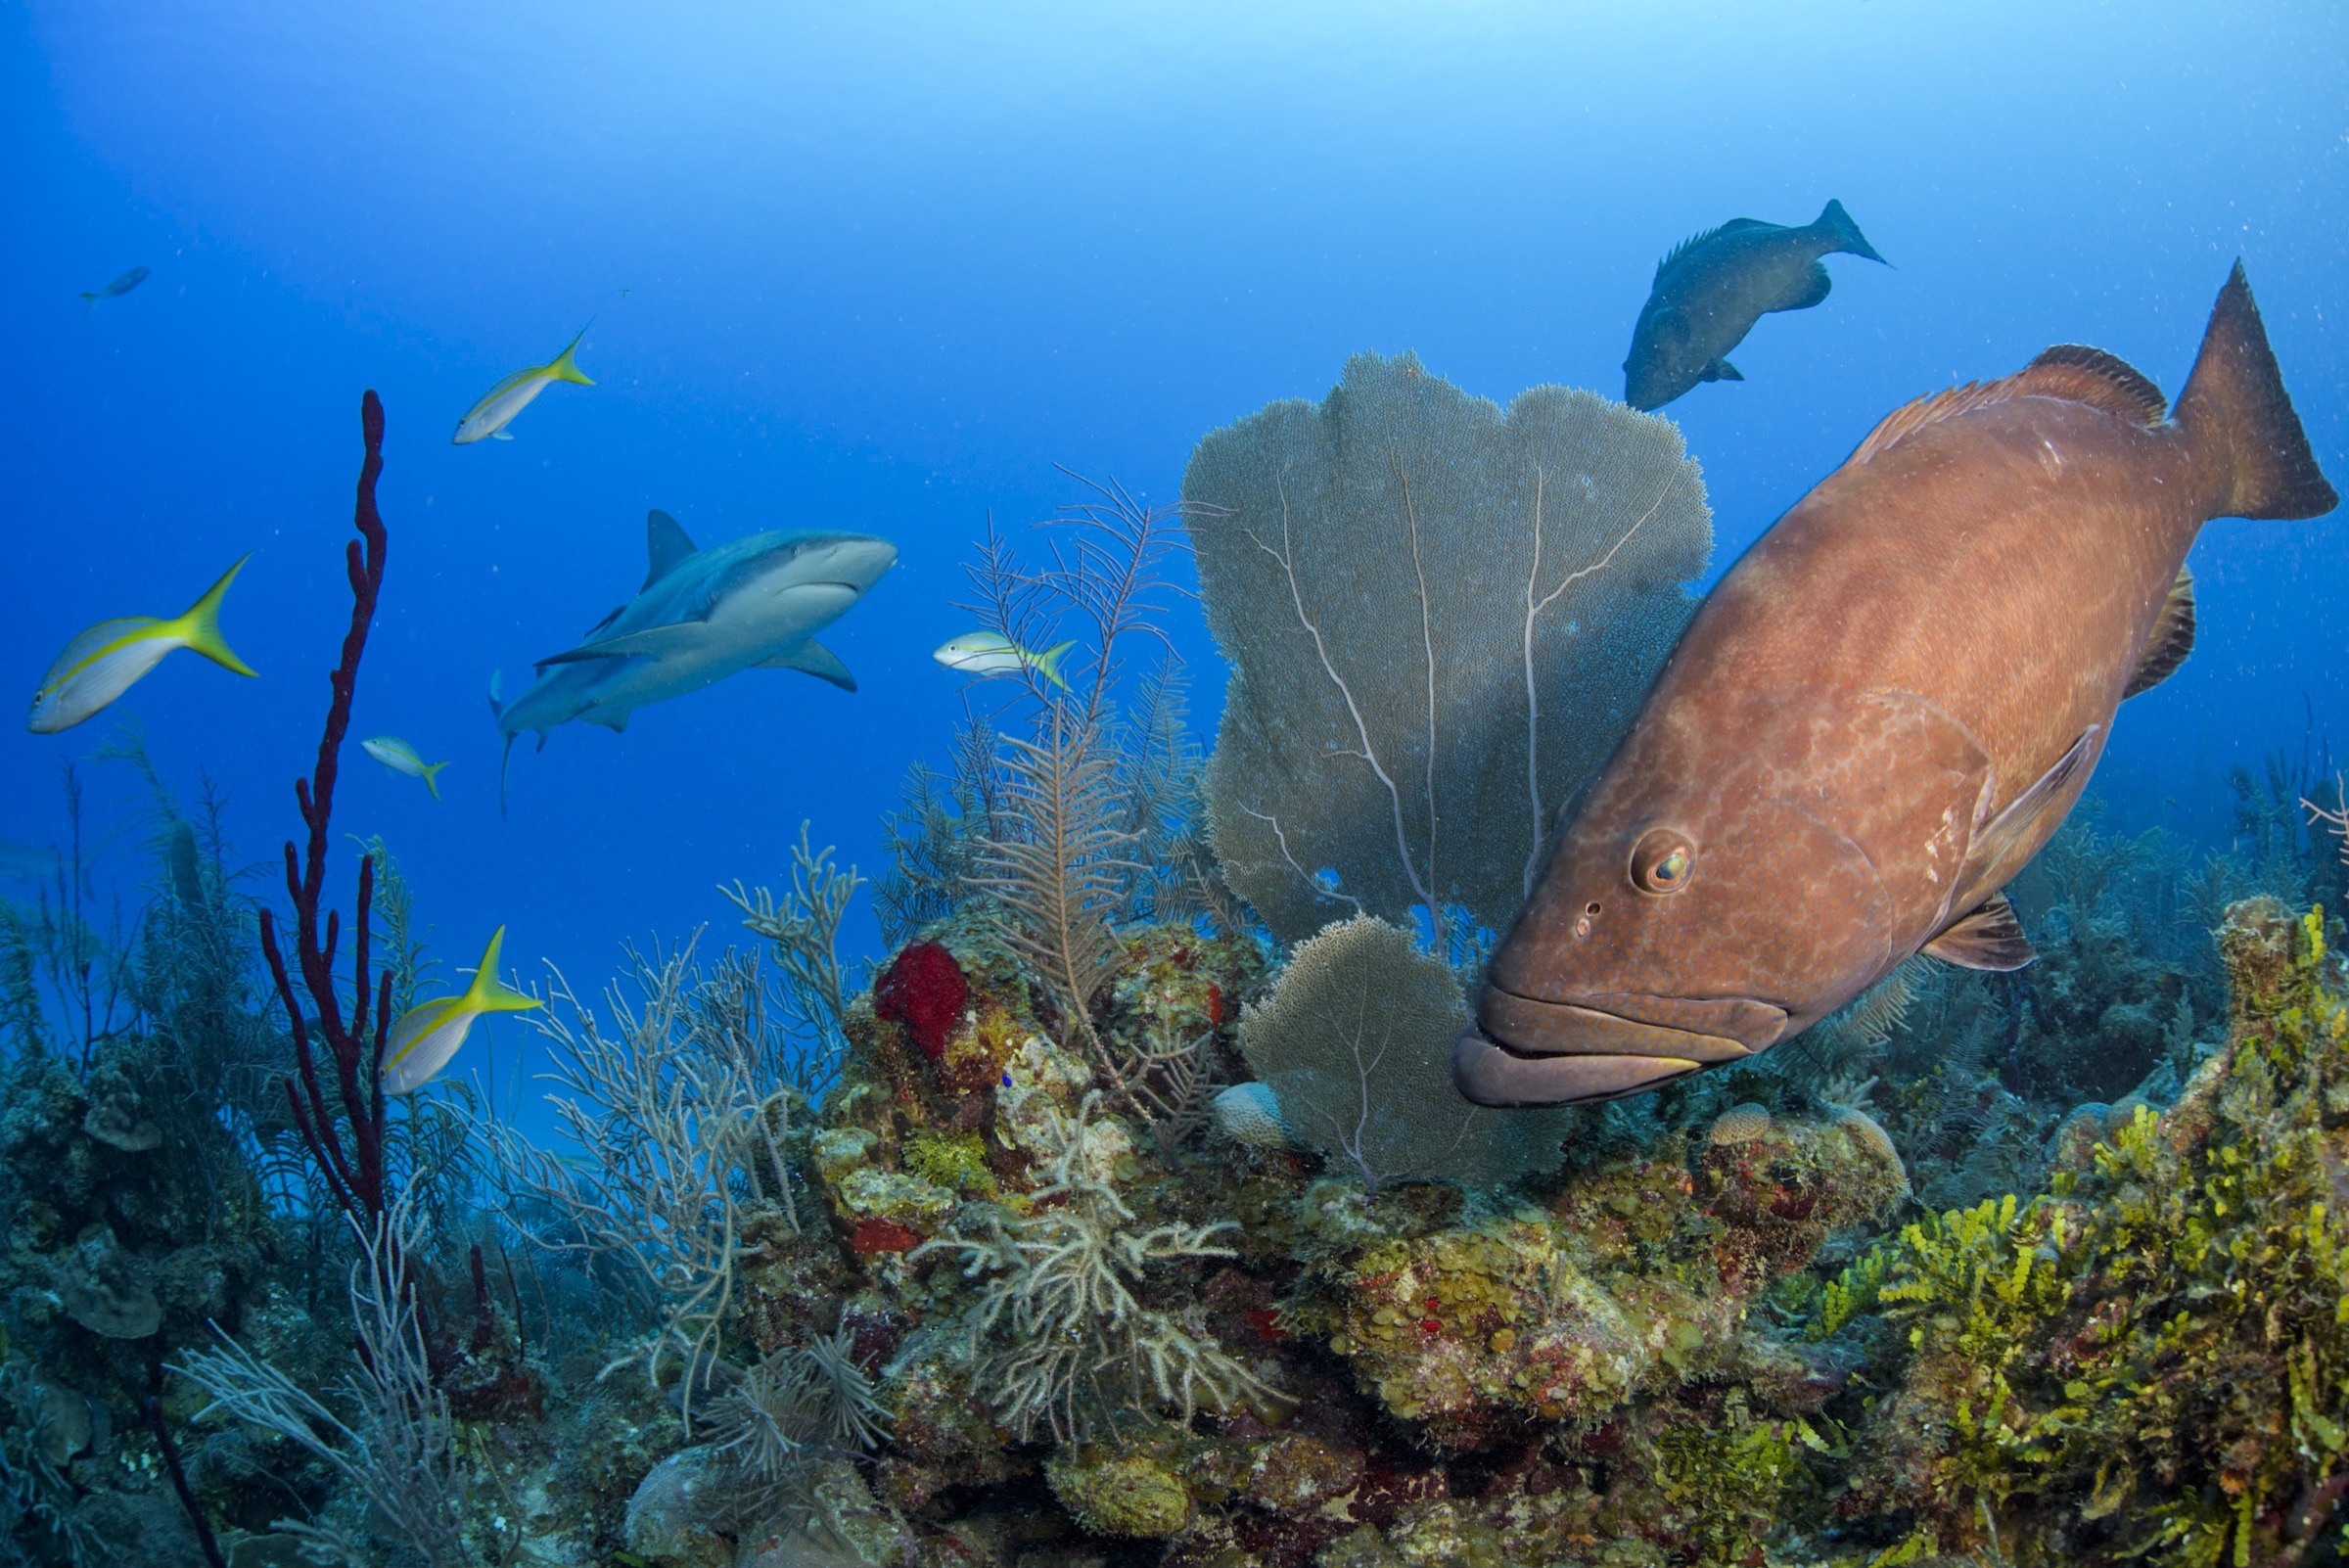 Top predators like sharks and groupers are relatively common in Cuba's Gardens of the Queen. Their presence, alongside countless herbivorous fishes and hard and soft corals, is an indicator of the health of the marine ecosystem here.